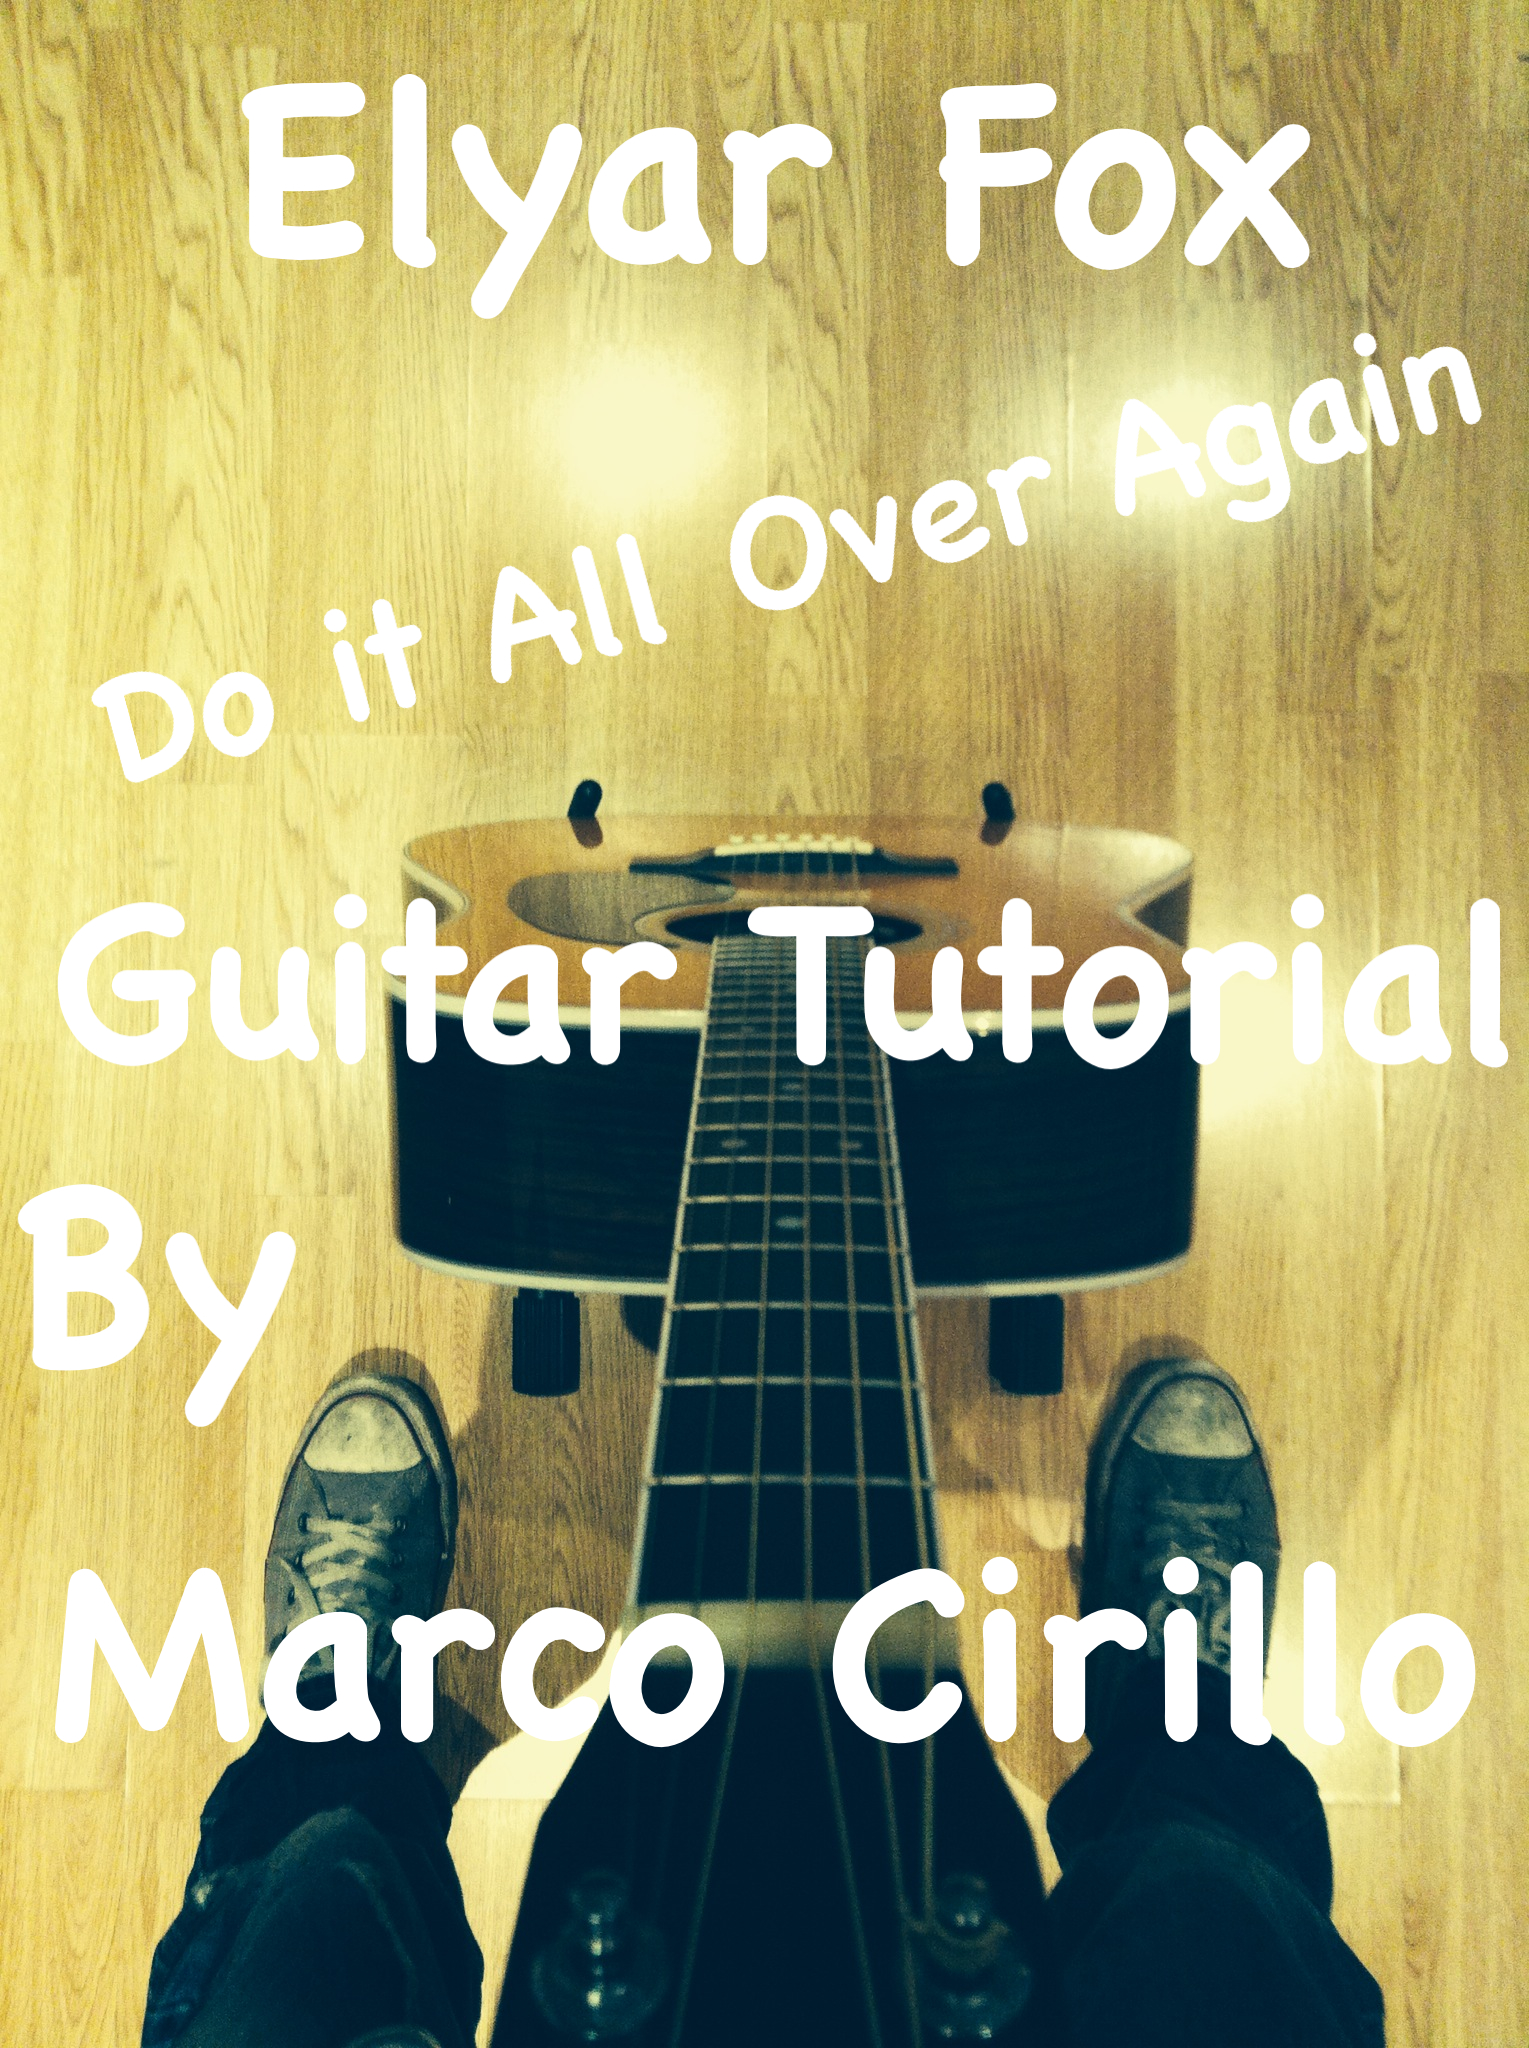 Elyar Fox Do It All Over Again Guitar Lesson Chords And Tab